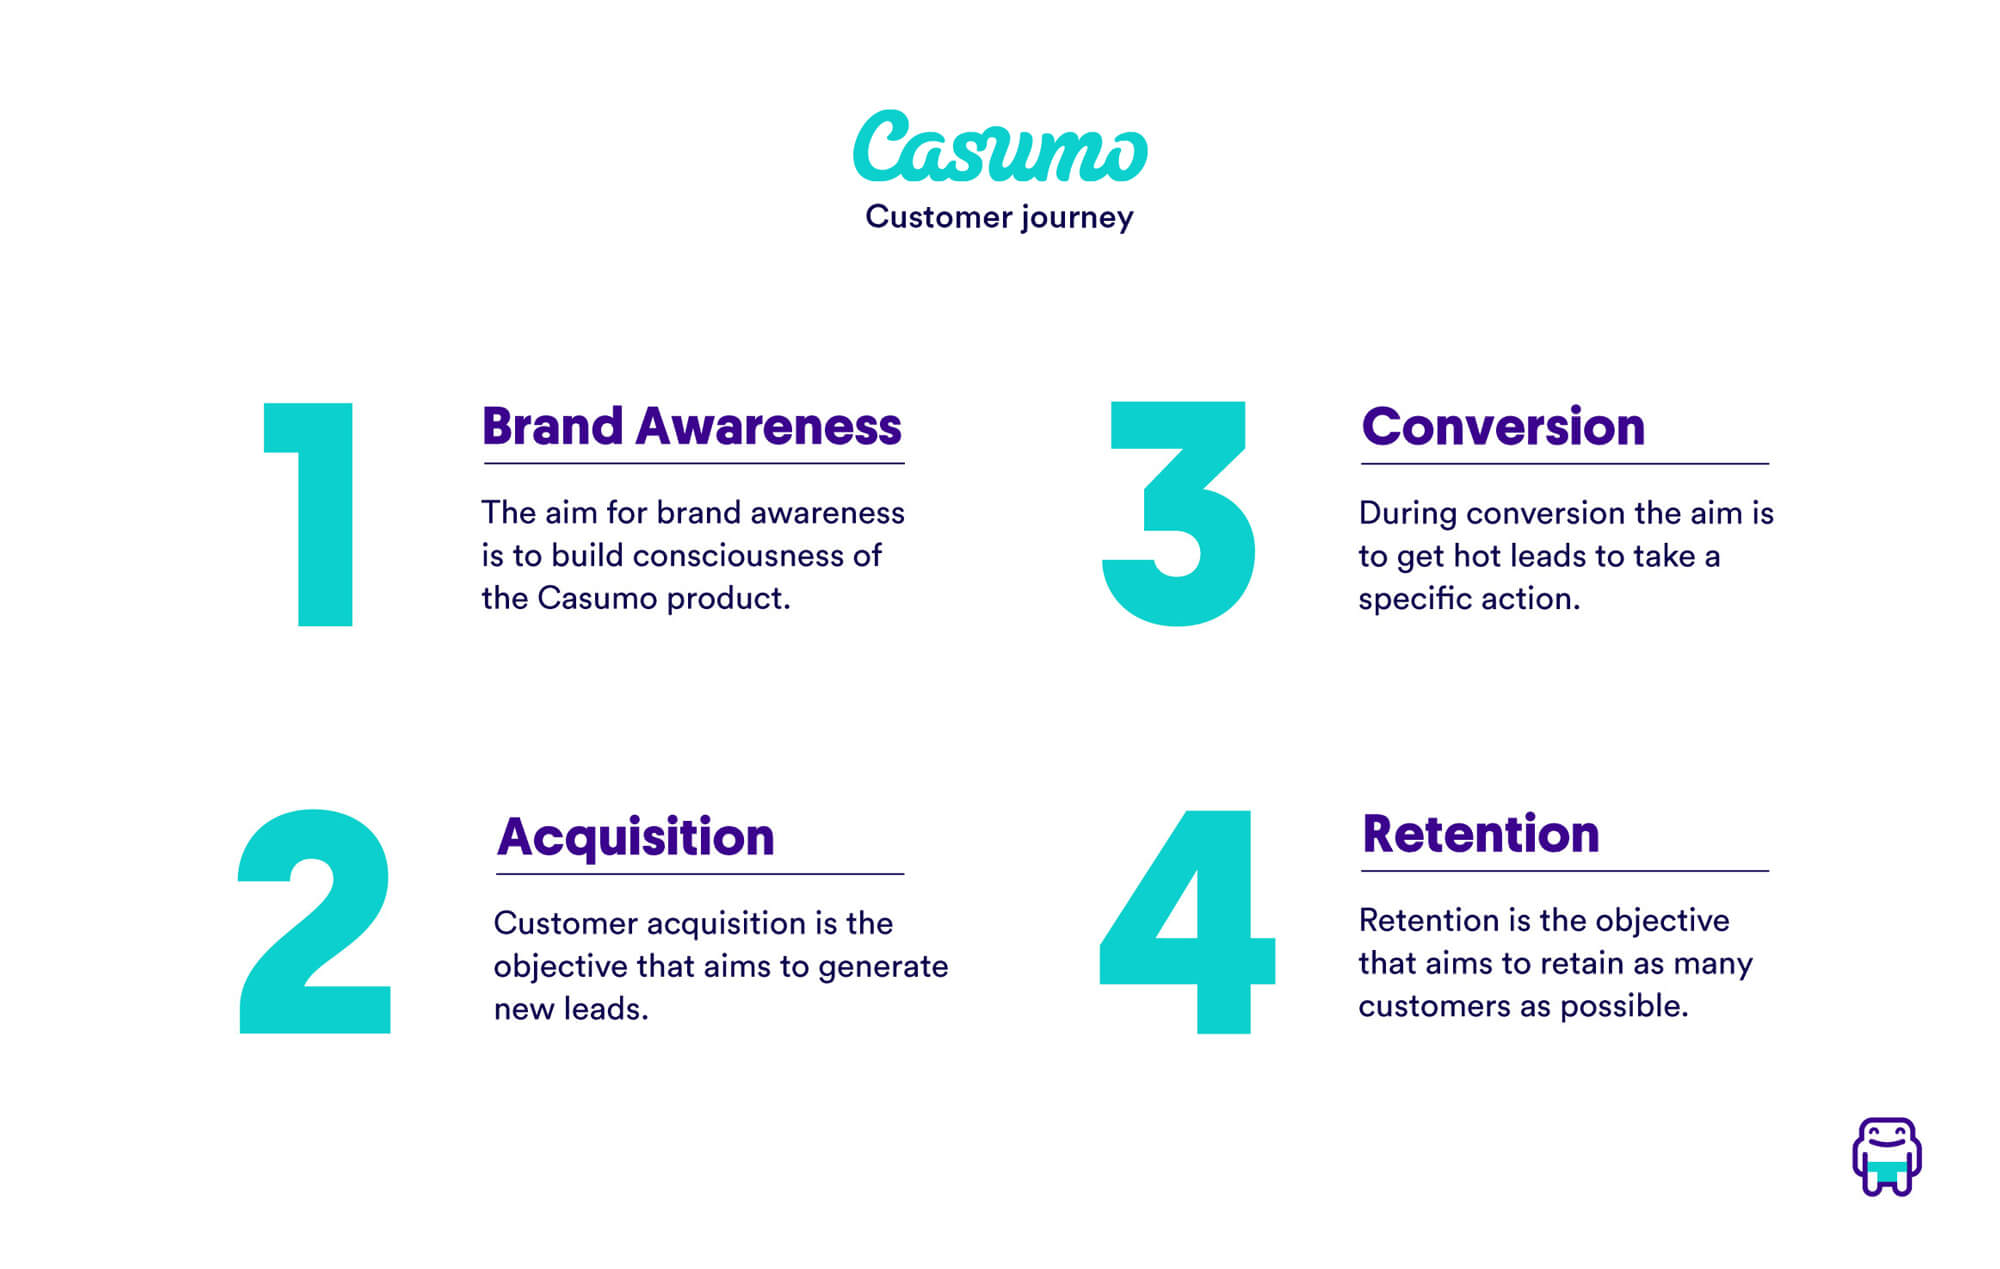 Customer journey map – Casumo